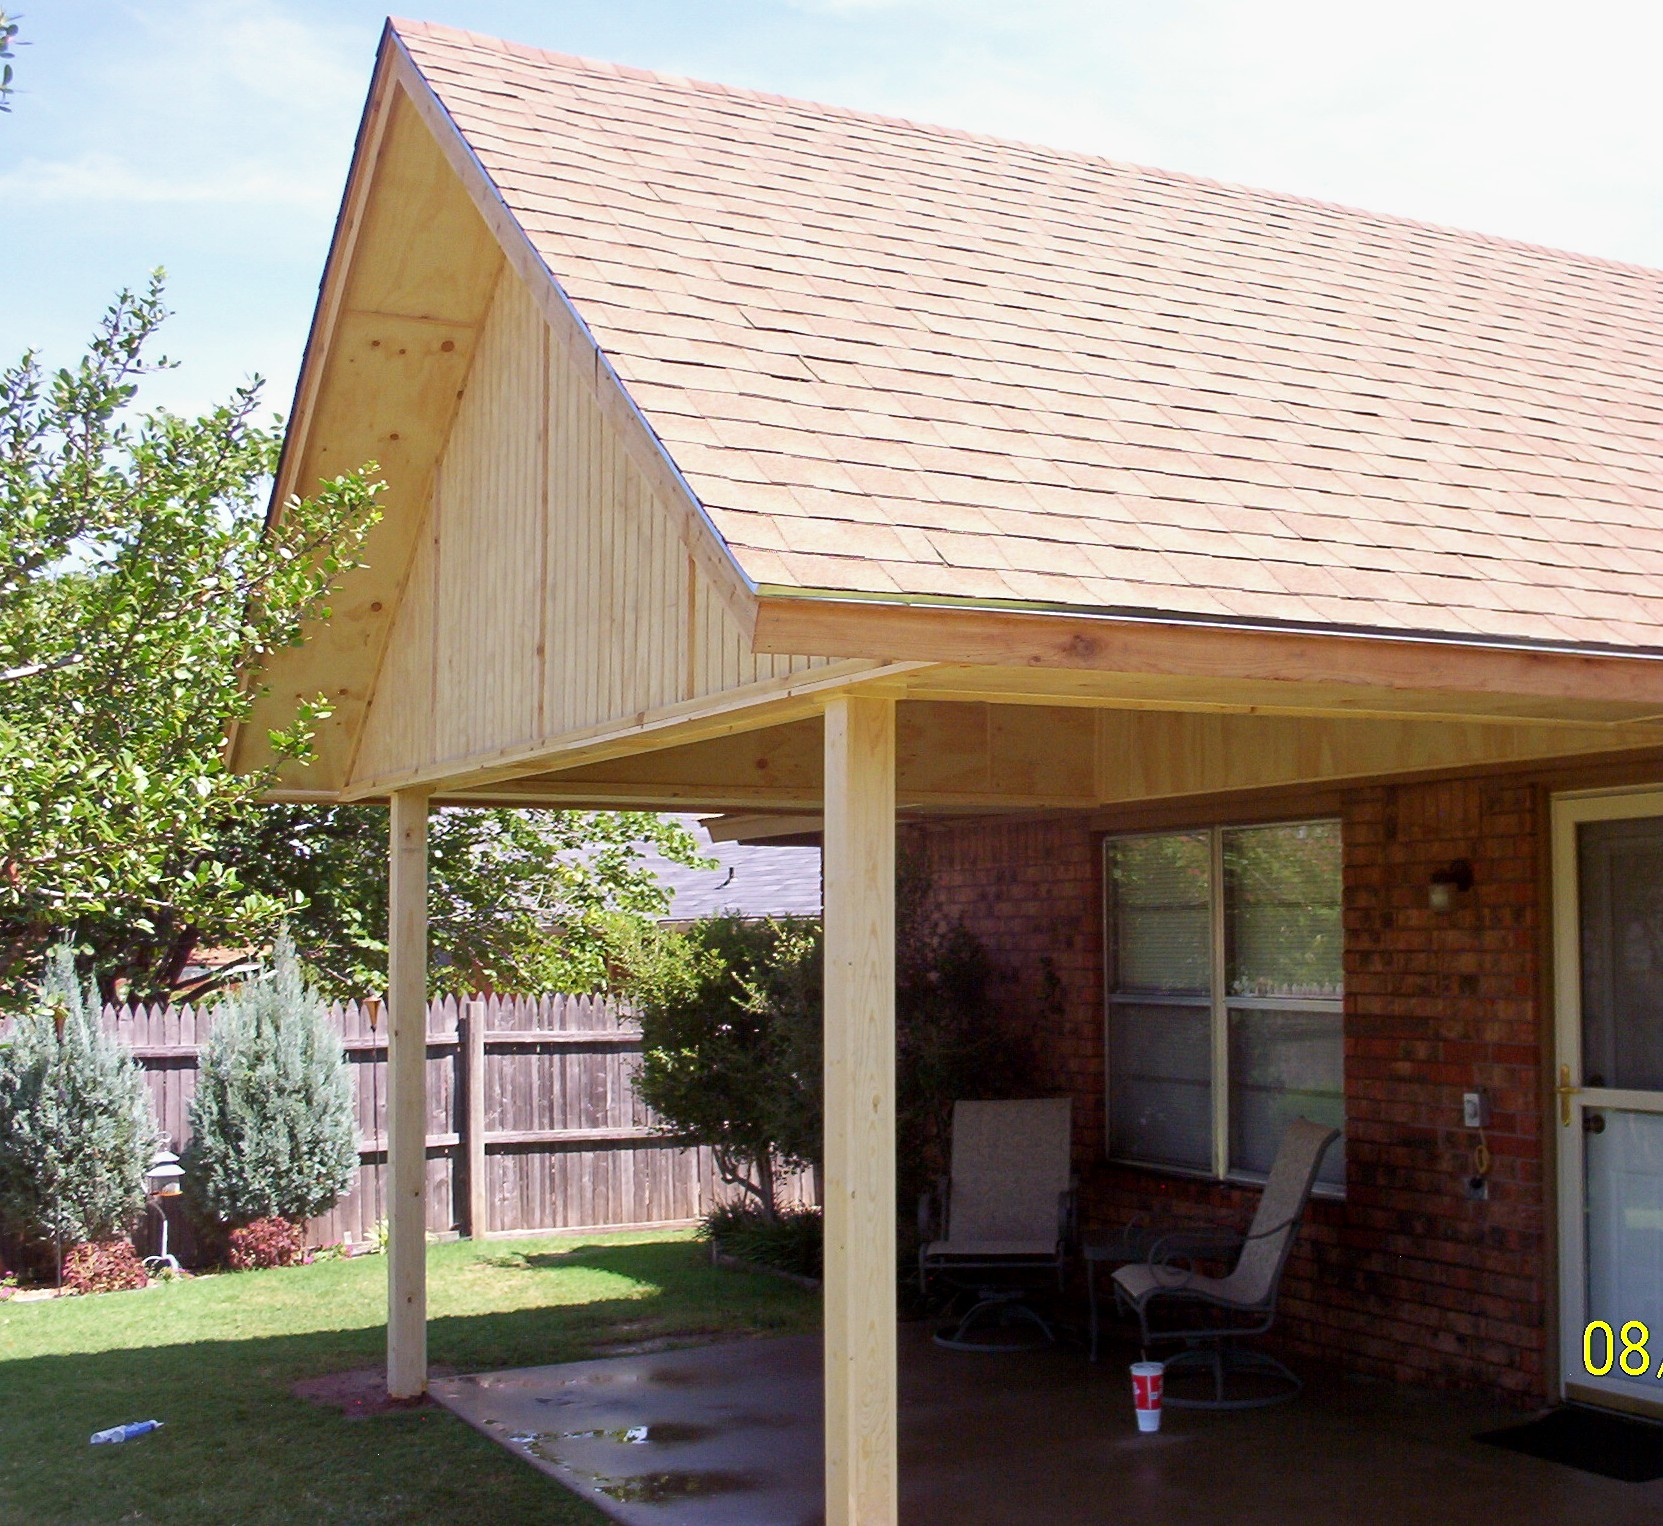 MM Construction Patio Covers Gabled Shed Flat Roof